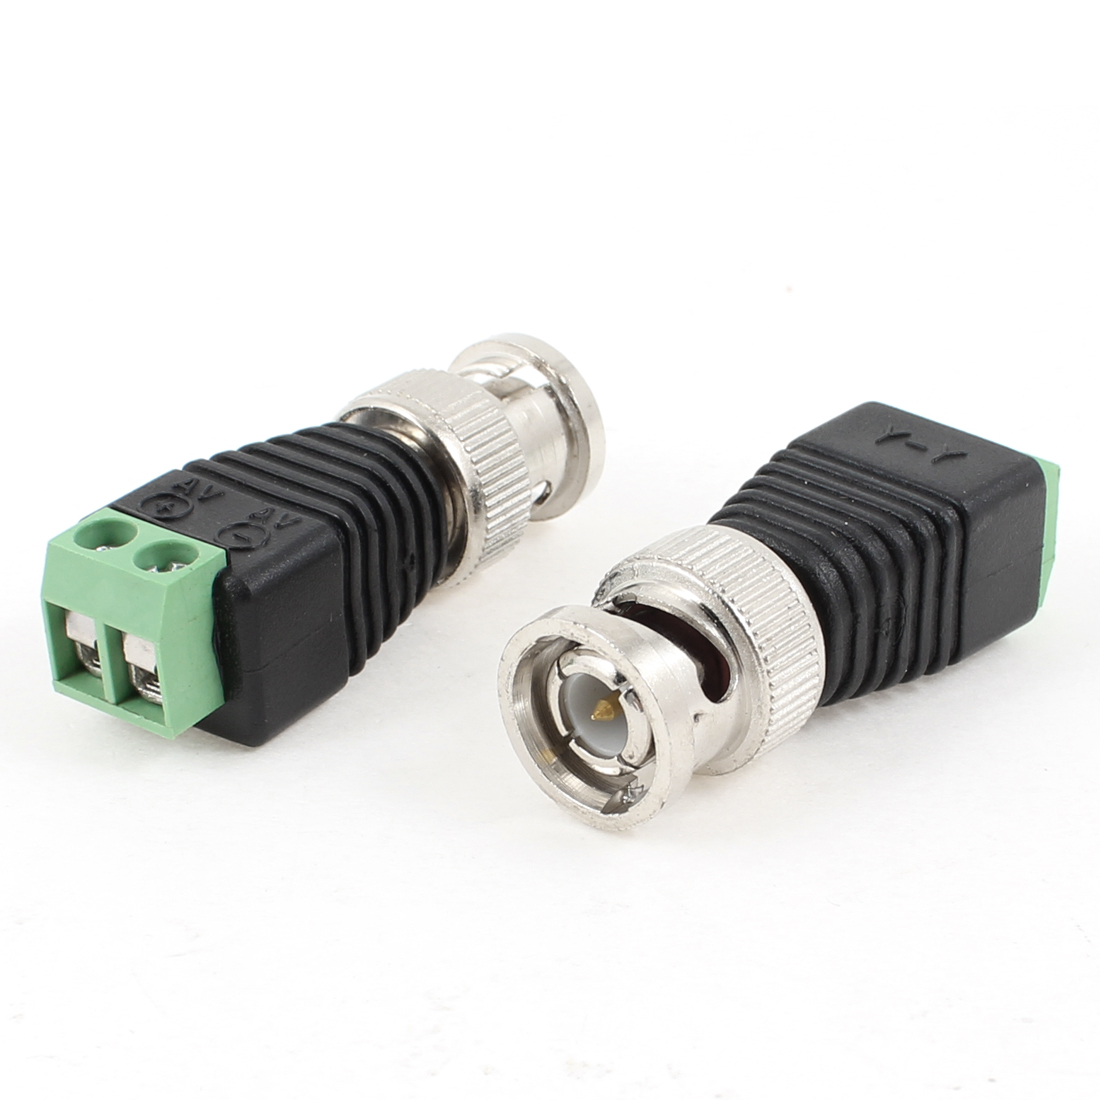 CCTV Video Camera BNC Male Connector Adapter Black Green 2 Pcs